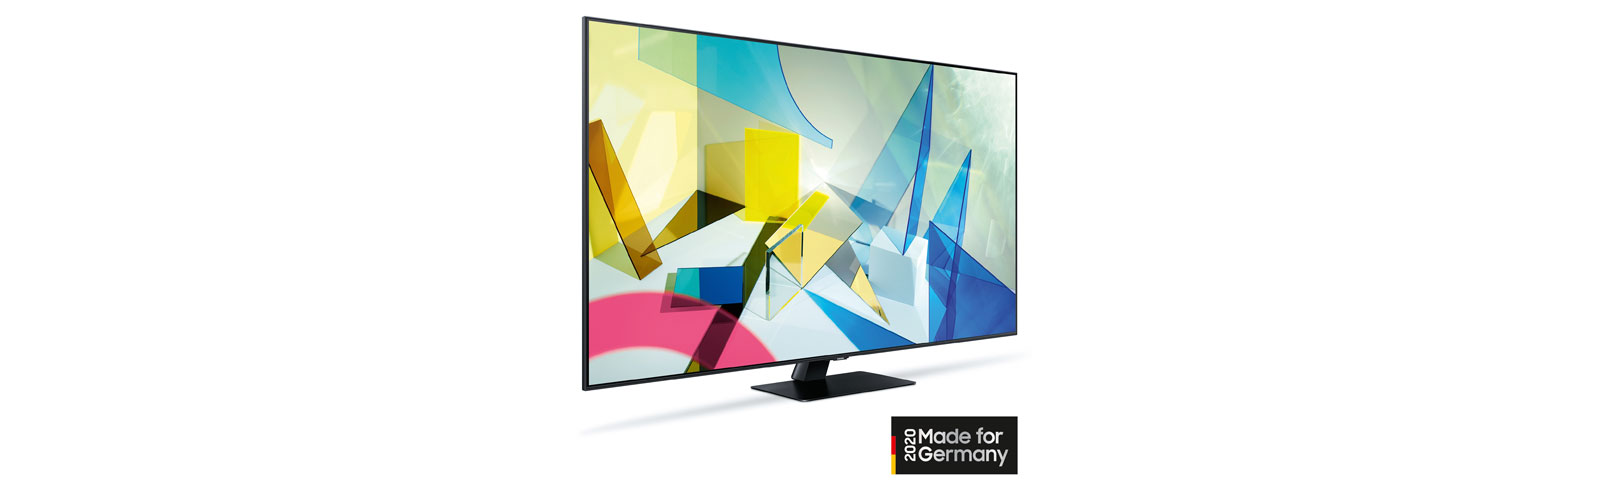 Samsung QE75Q80T/GQ75Q80T, QE65Q70T/GQ65Q80T, QE55Q80T/GQ55Q80T, QE49Q80T/GQ49Q80T specifications and features